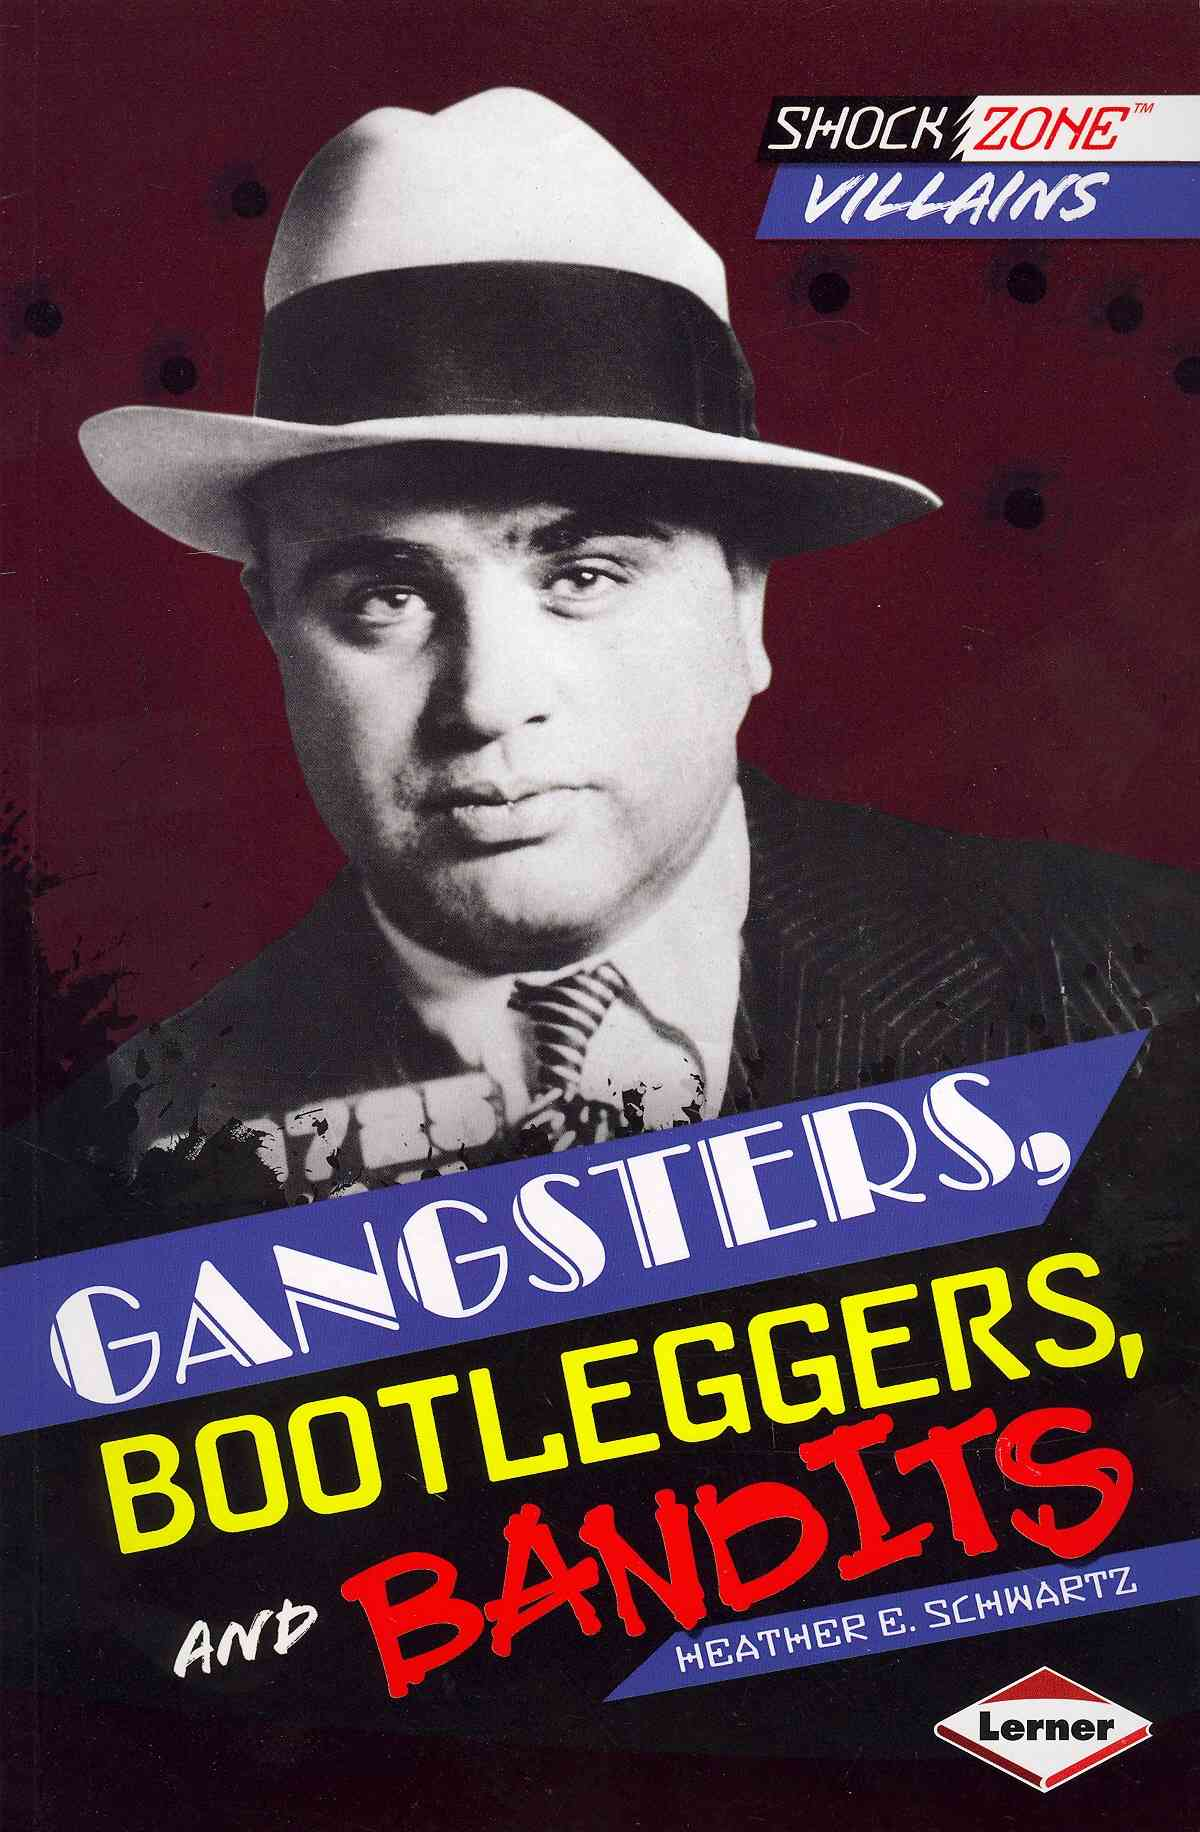 Gangsters, Bootleggers, and Bandits By Schwartz, Heather E.